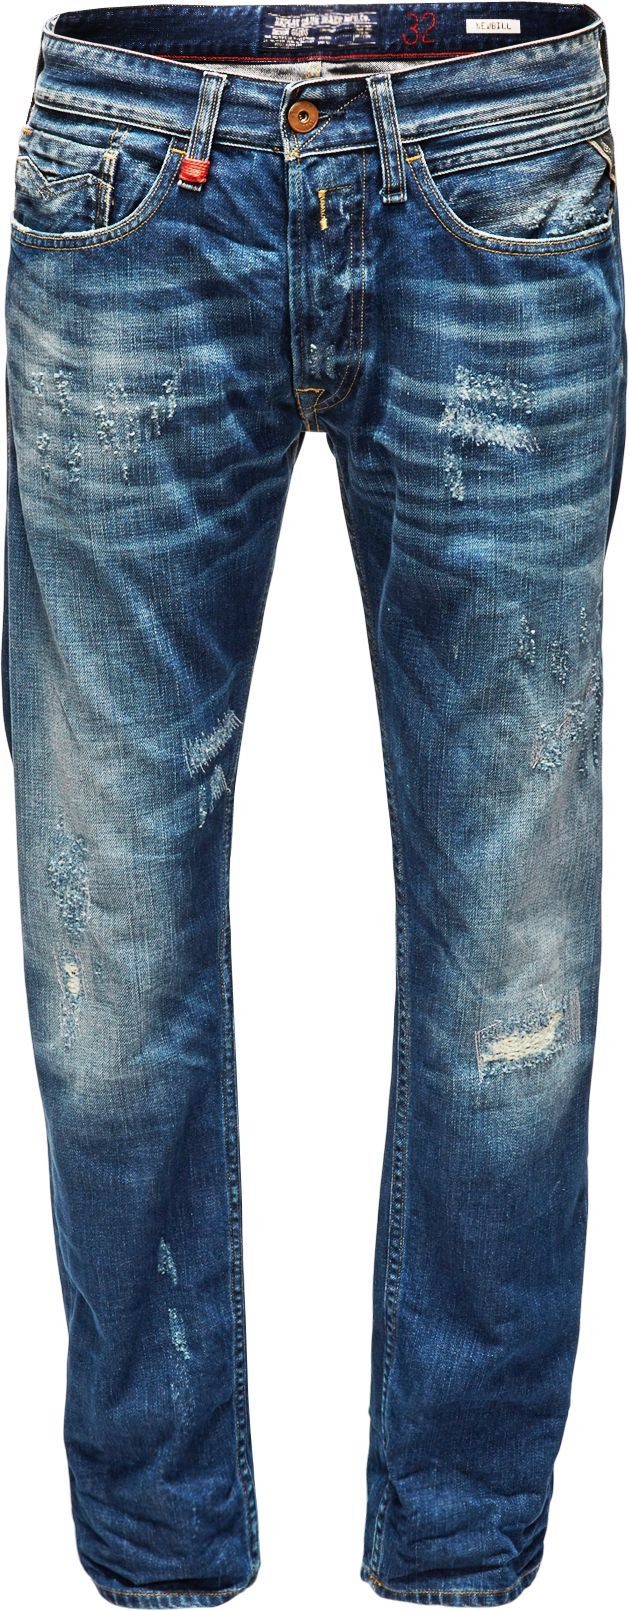 Jeans von Replay @ ABOUT YOU http://www.aboutyou.de/quick/1705768?utm_source=pinterest&utm_medium=social&utm_term=AY-Pin&utm_content=2015-07-KW-30&utm_campaign=Starstyle-Men-Board